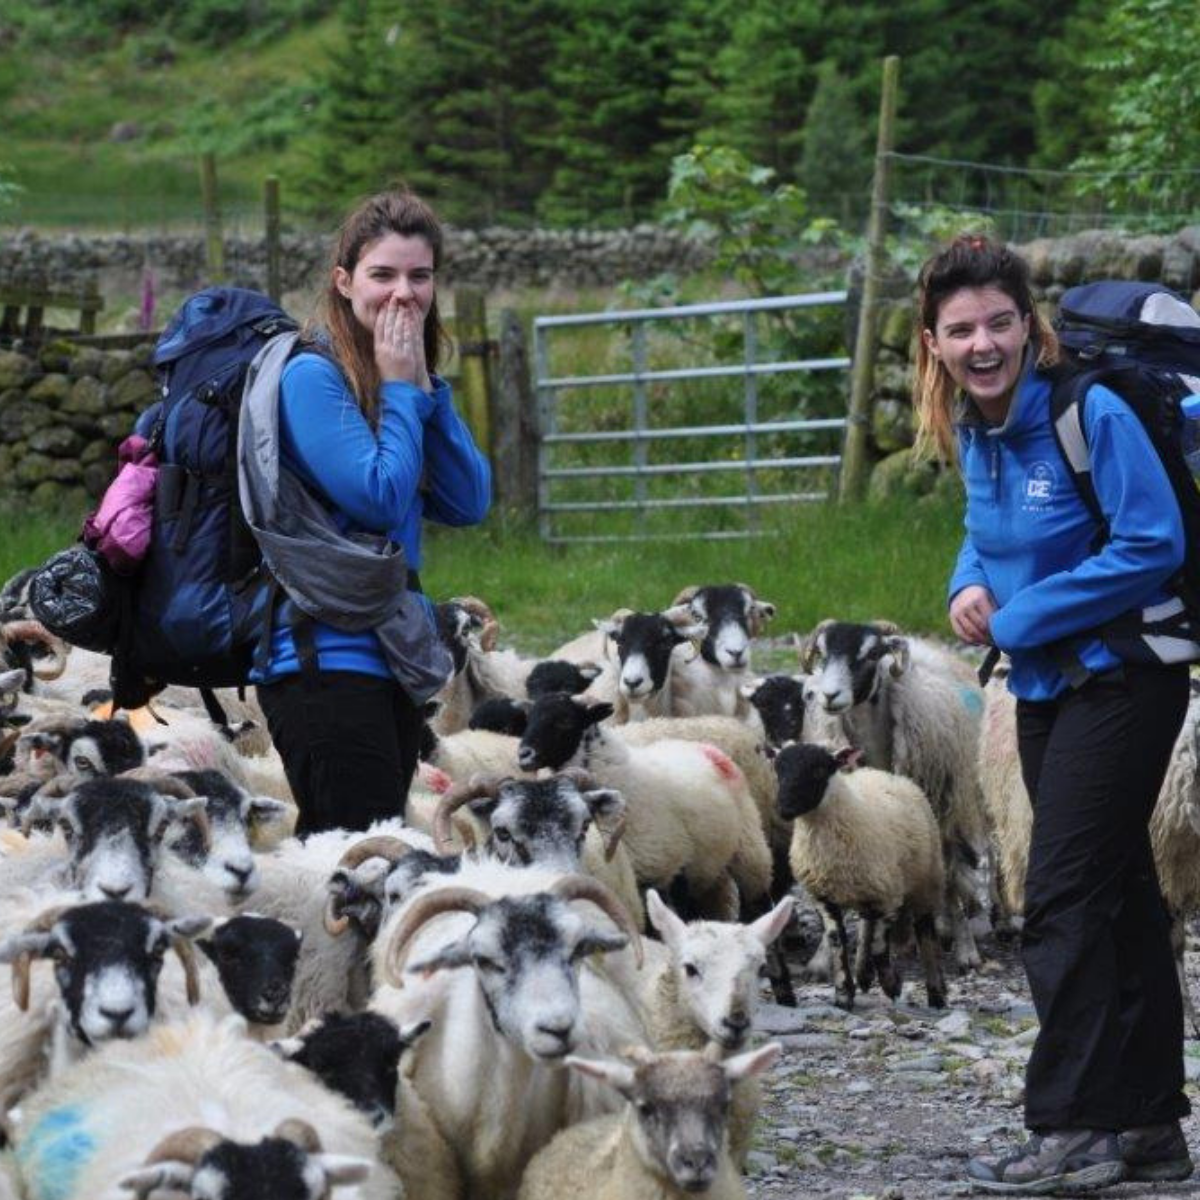 Two girls on their DofE expedition in a field of sheep